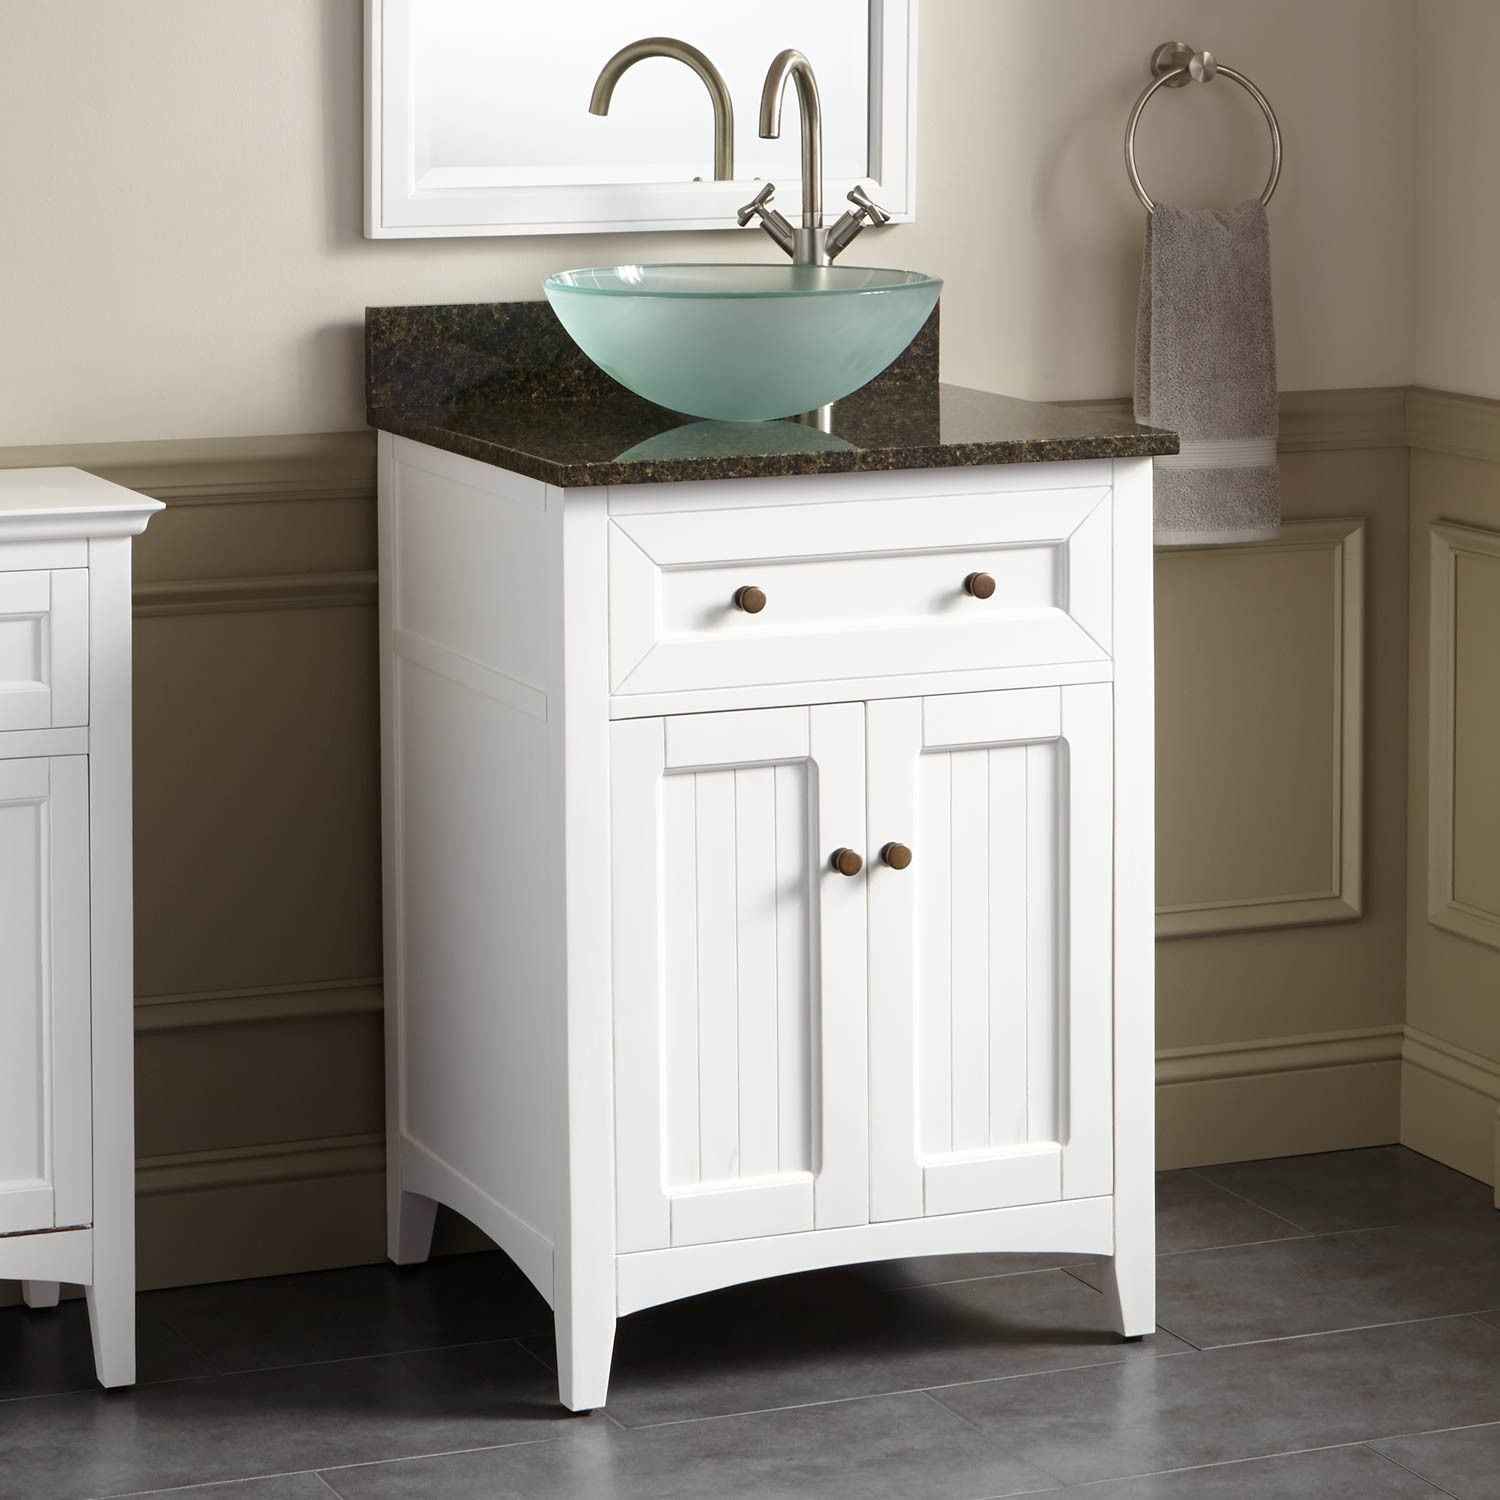 24 Halifax Vessel Sink Vanity White Vessel Sink Vanity